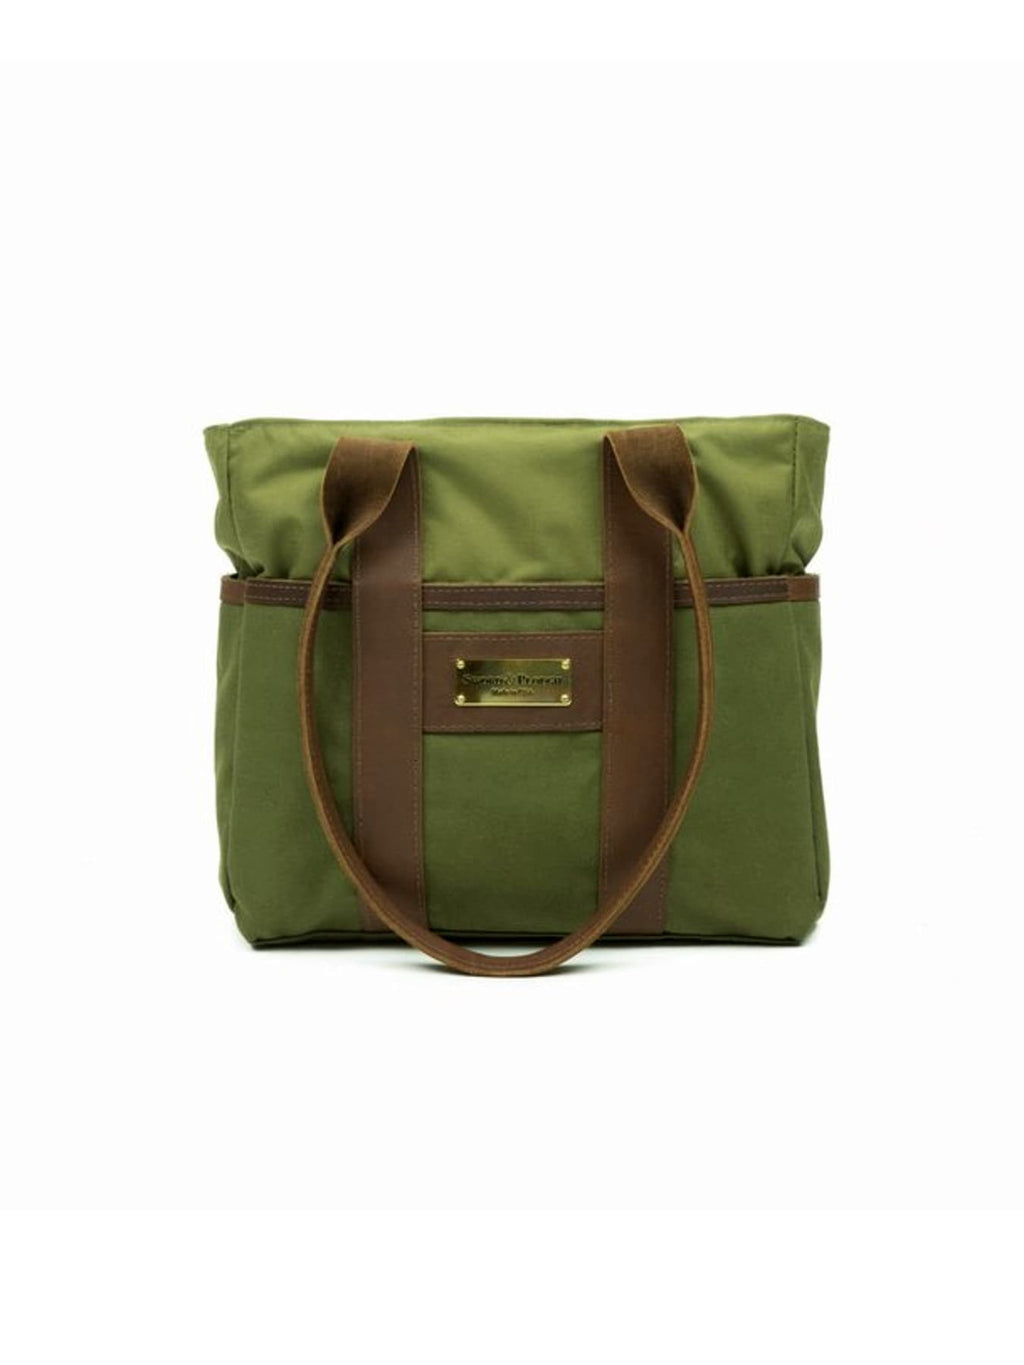 Green Water Resistant Zip Top Tote Bag